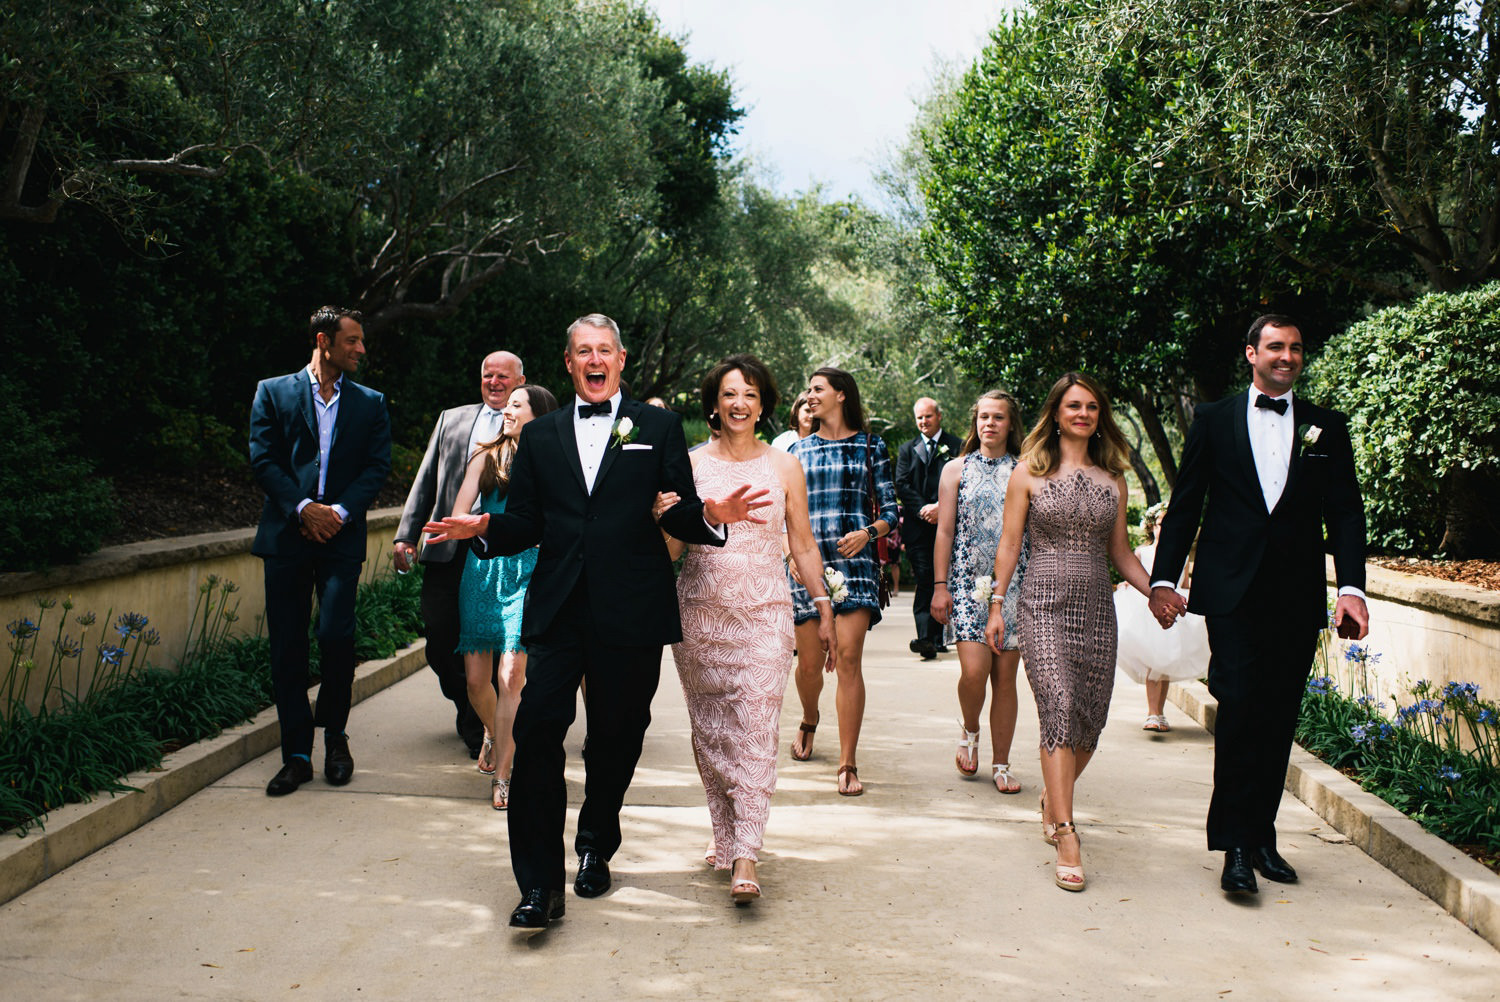 couples family follow close behind smiling and laughing - montecito wedding photography